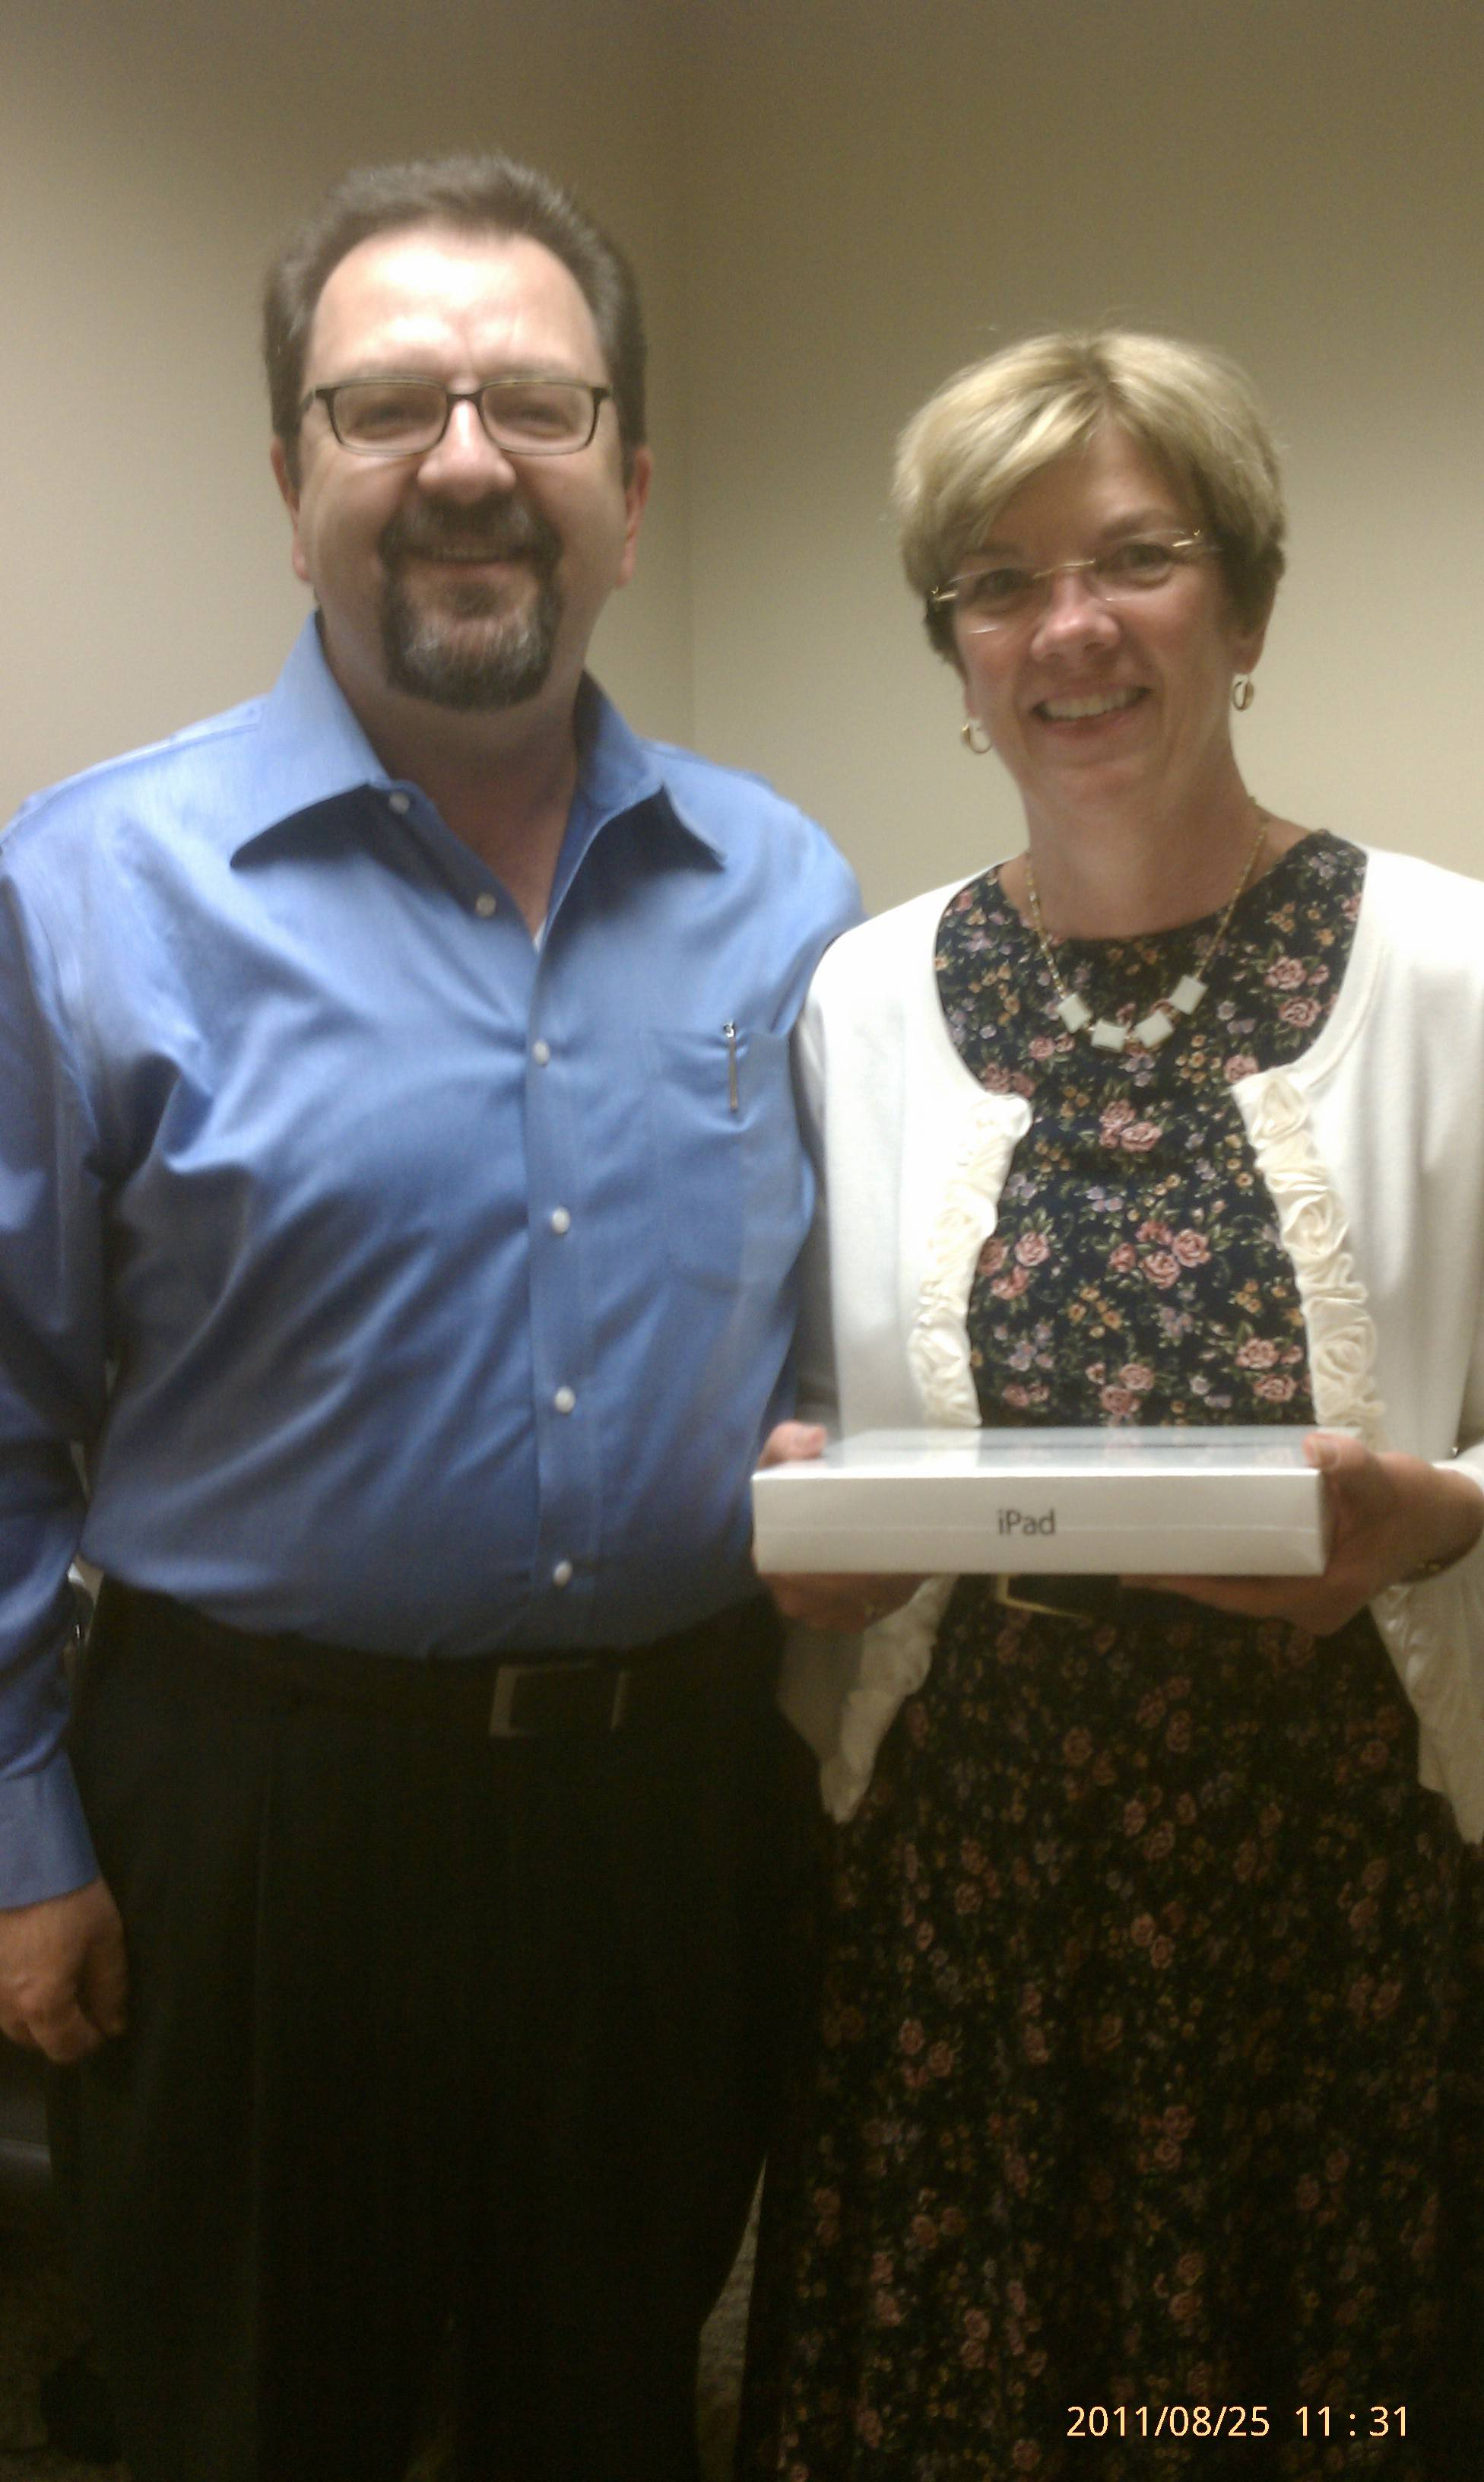 Mary is now the proud owner of an iPad 2